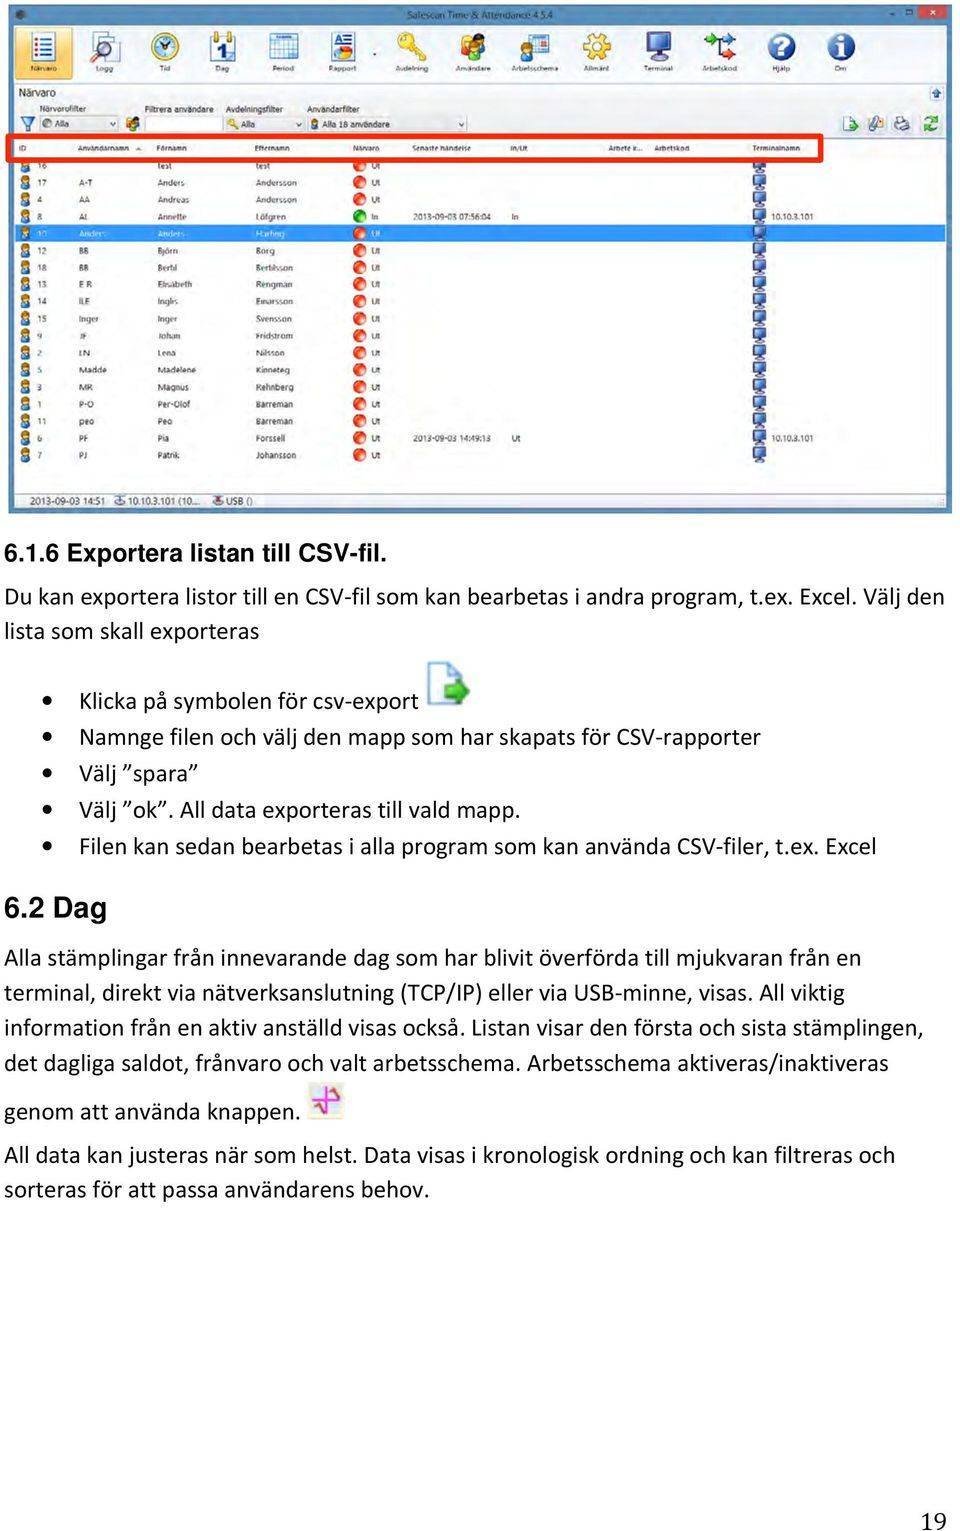 Filen kan sedan bearbetas i alla program som kan använda CSV- filer, t.ex. Excel 6.